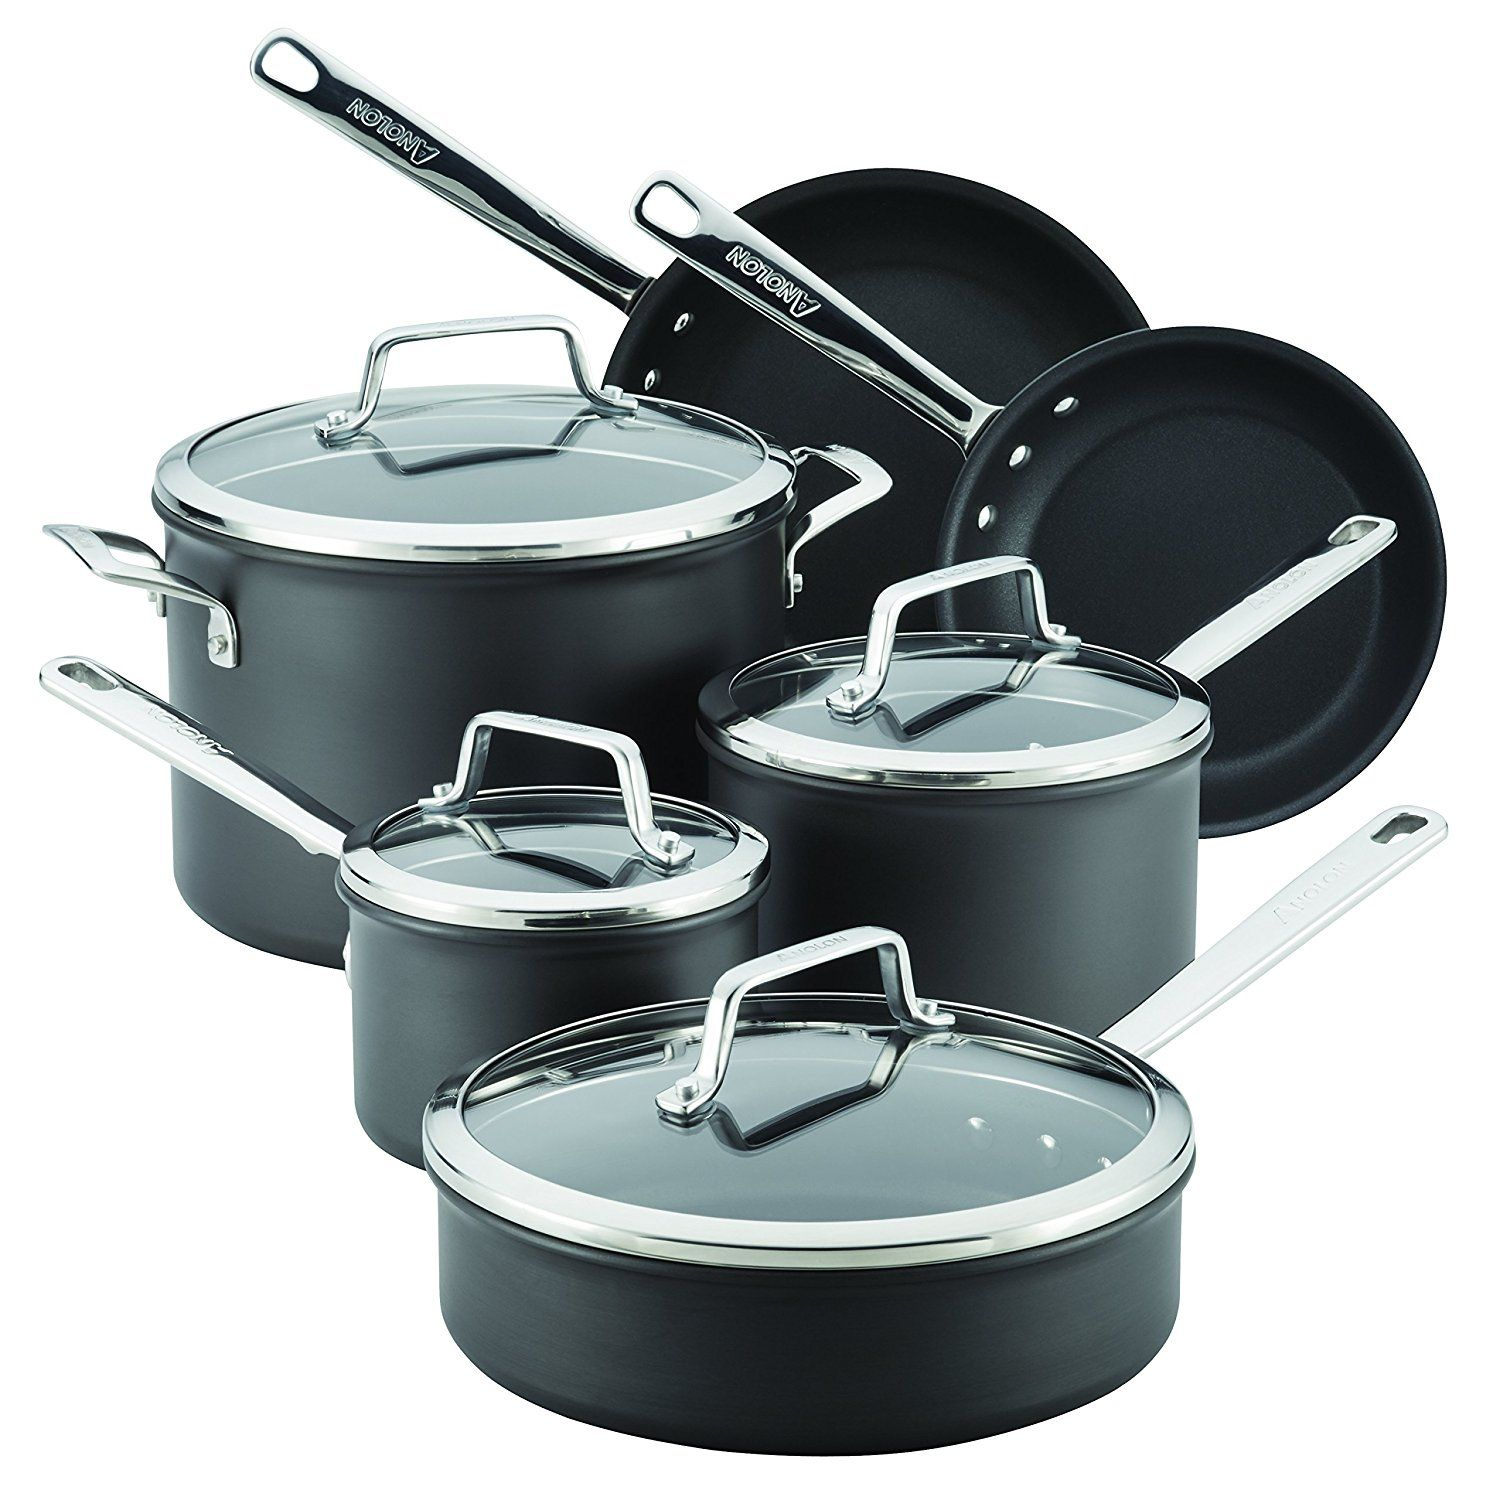 Anolon 10 Piece Authority Hard-Anodized Nonstick Cookware Set, Gray ...